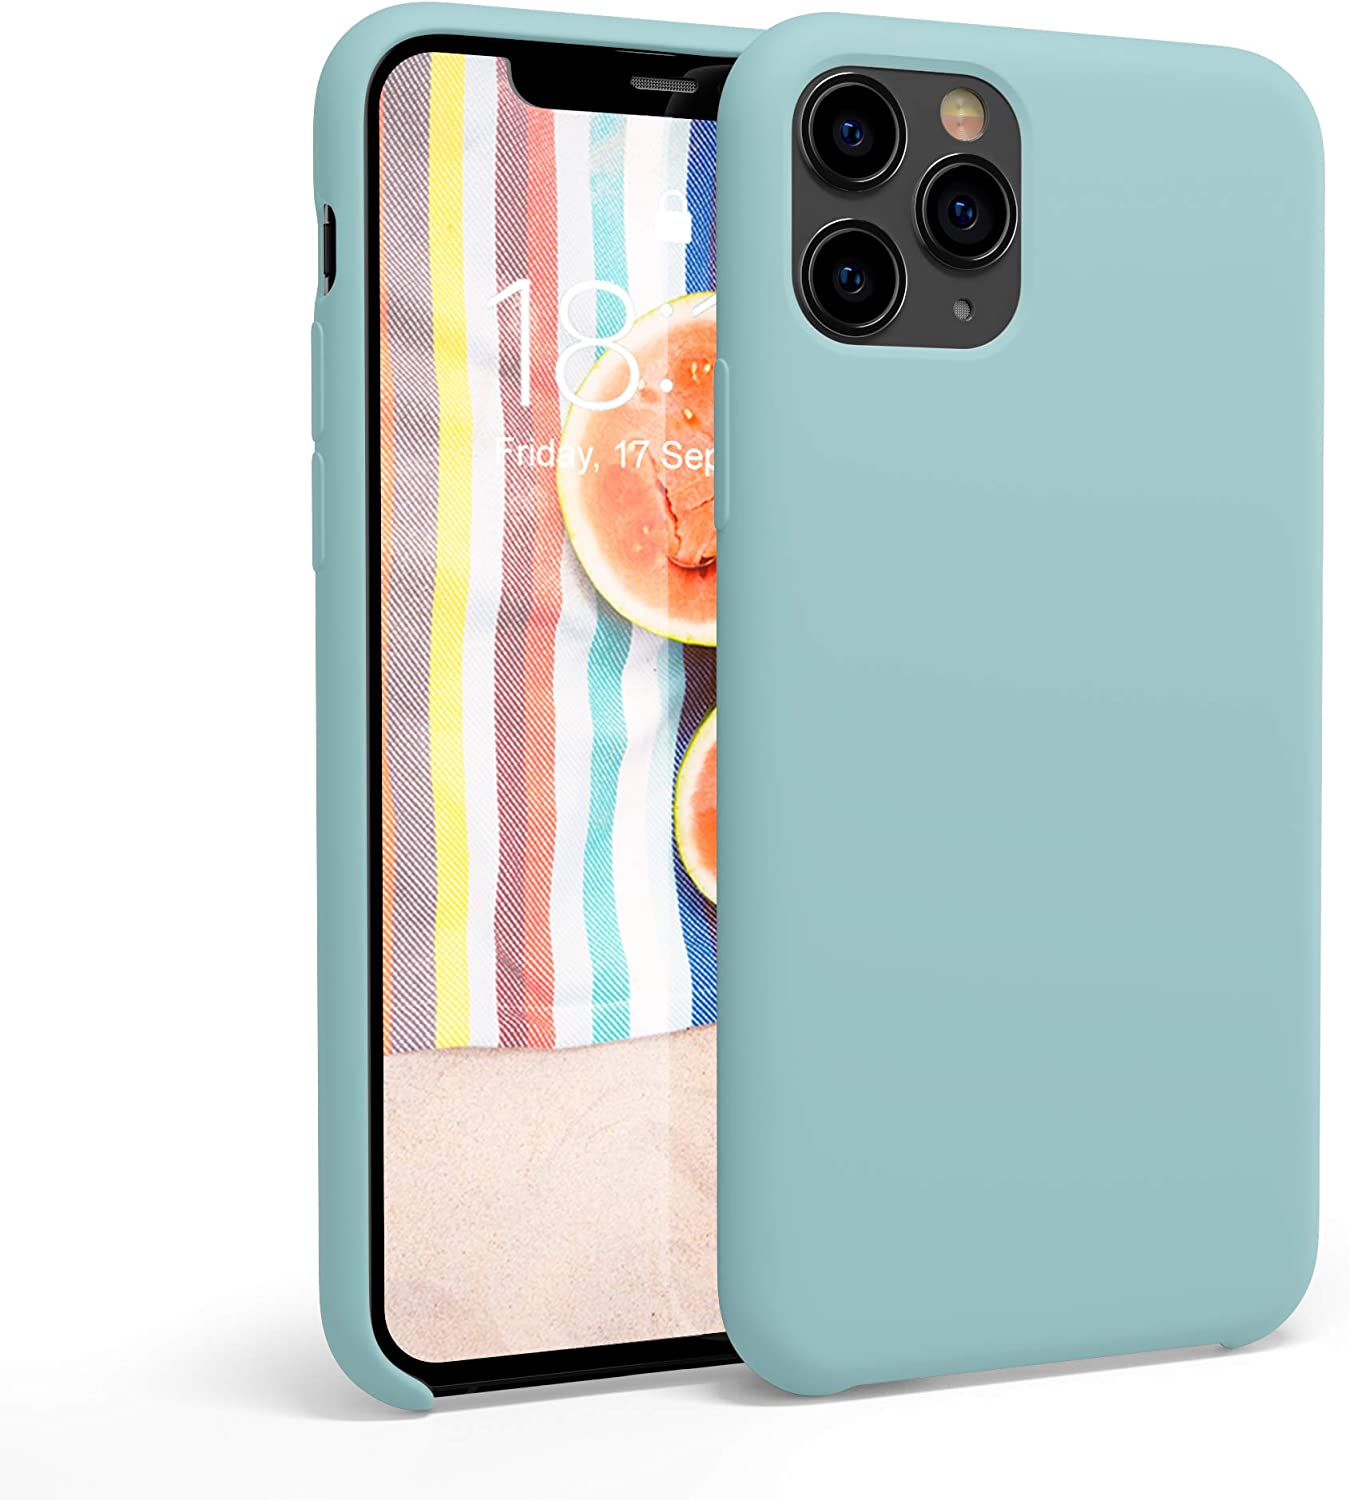 honua. Silicone Case for iPhone 11 Pro, Soft and Protective iPhone 11 Pro Case with Microfiber Lining, Compatible with Apple iPhone 11Pro 5.8